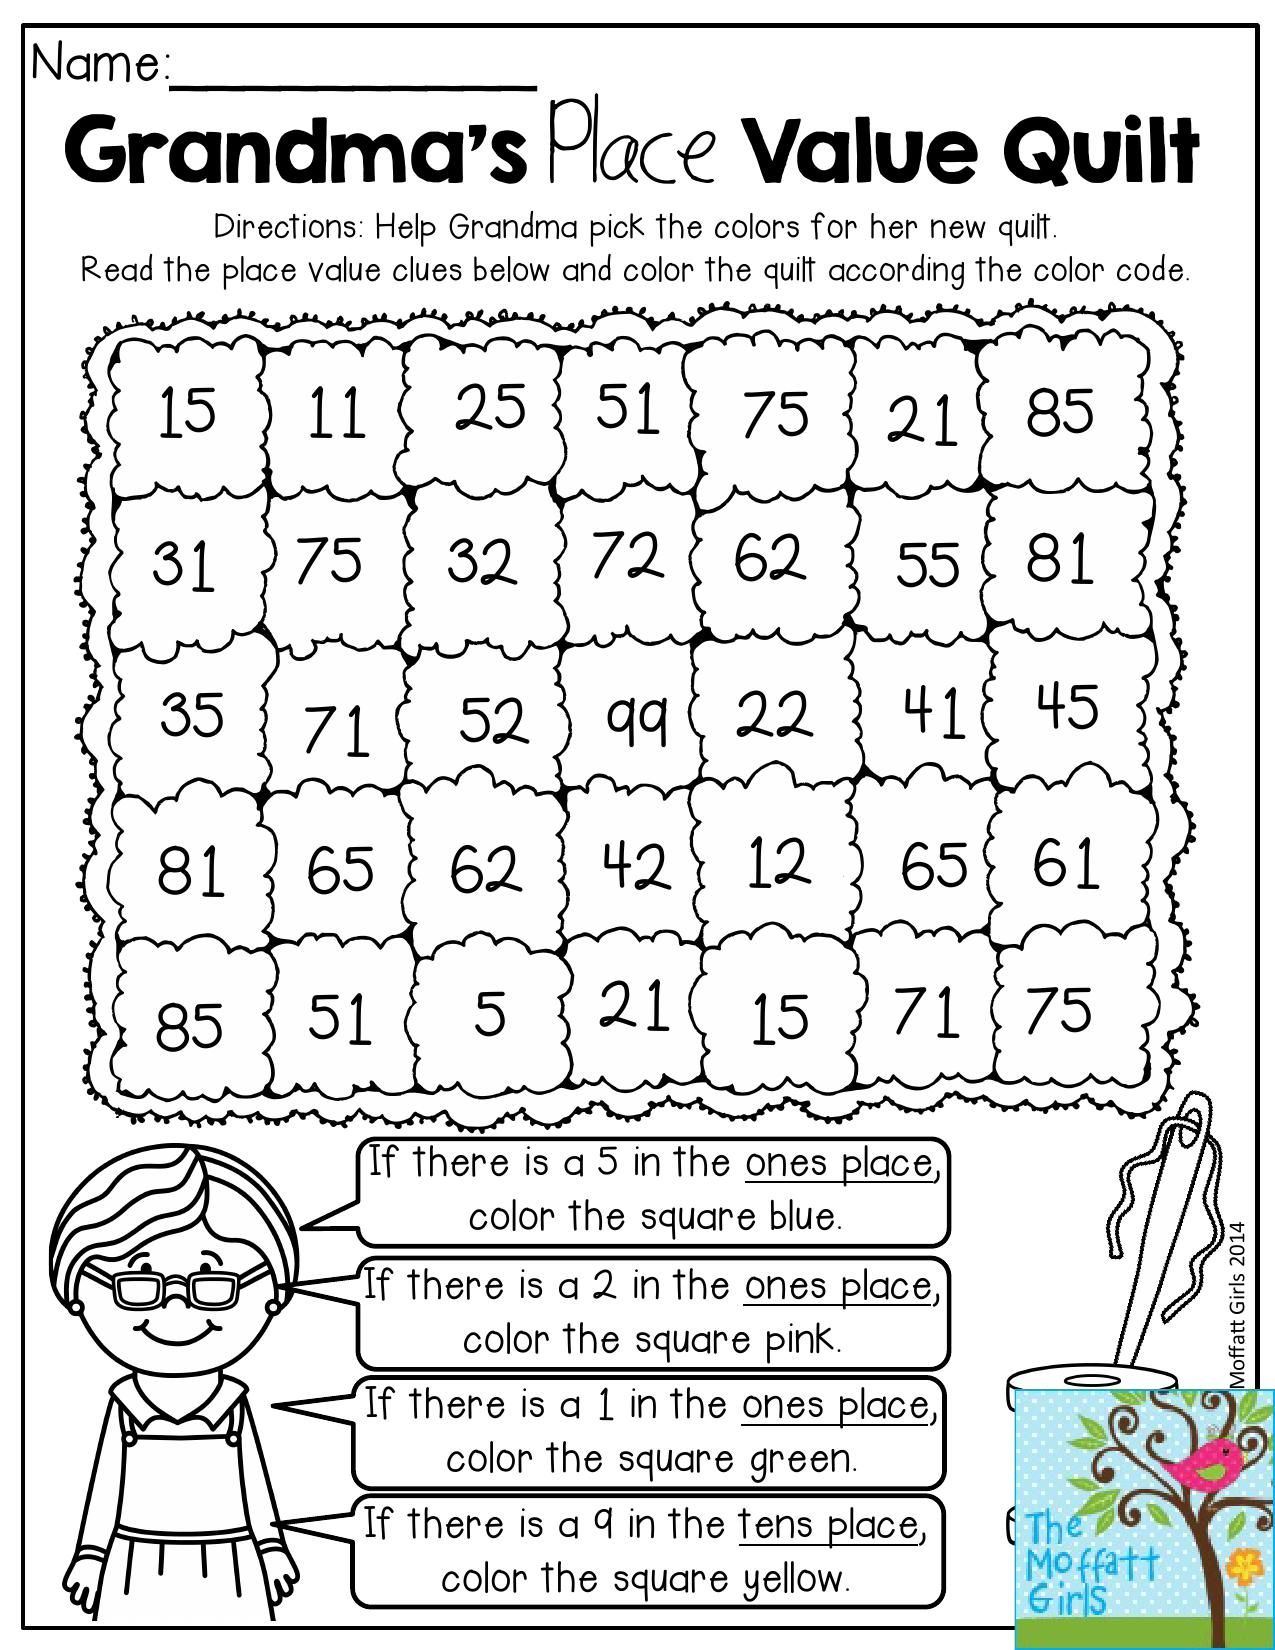 Worksheet Place Value For 3rd Grade free place value i have who has the two instructional grandmas quilt help grandma pick colors for her according to such a fun way practice values